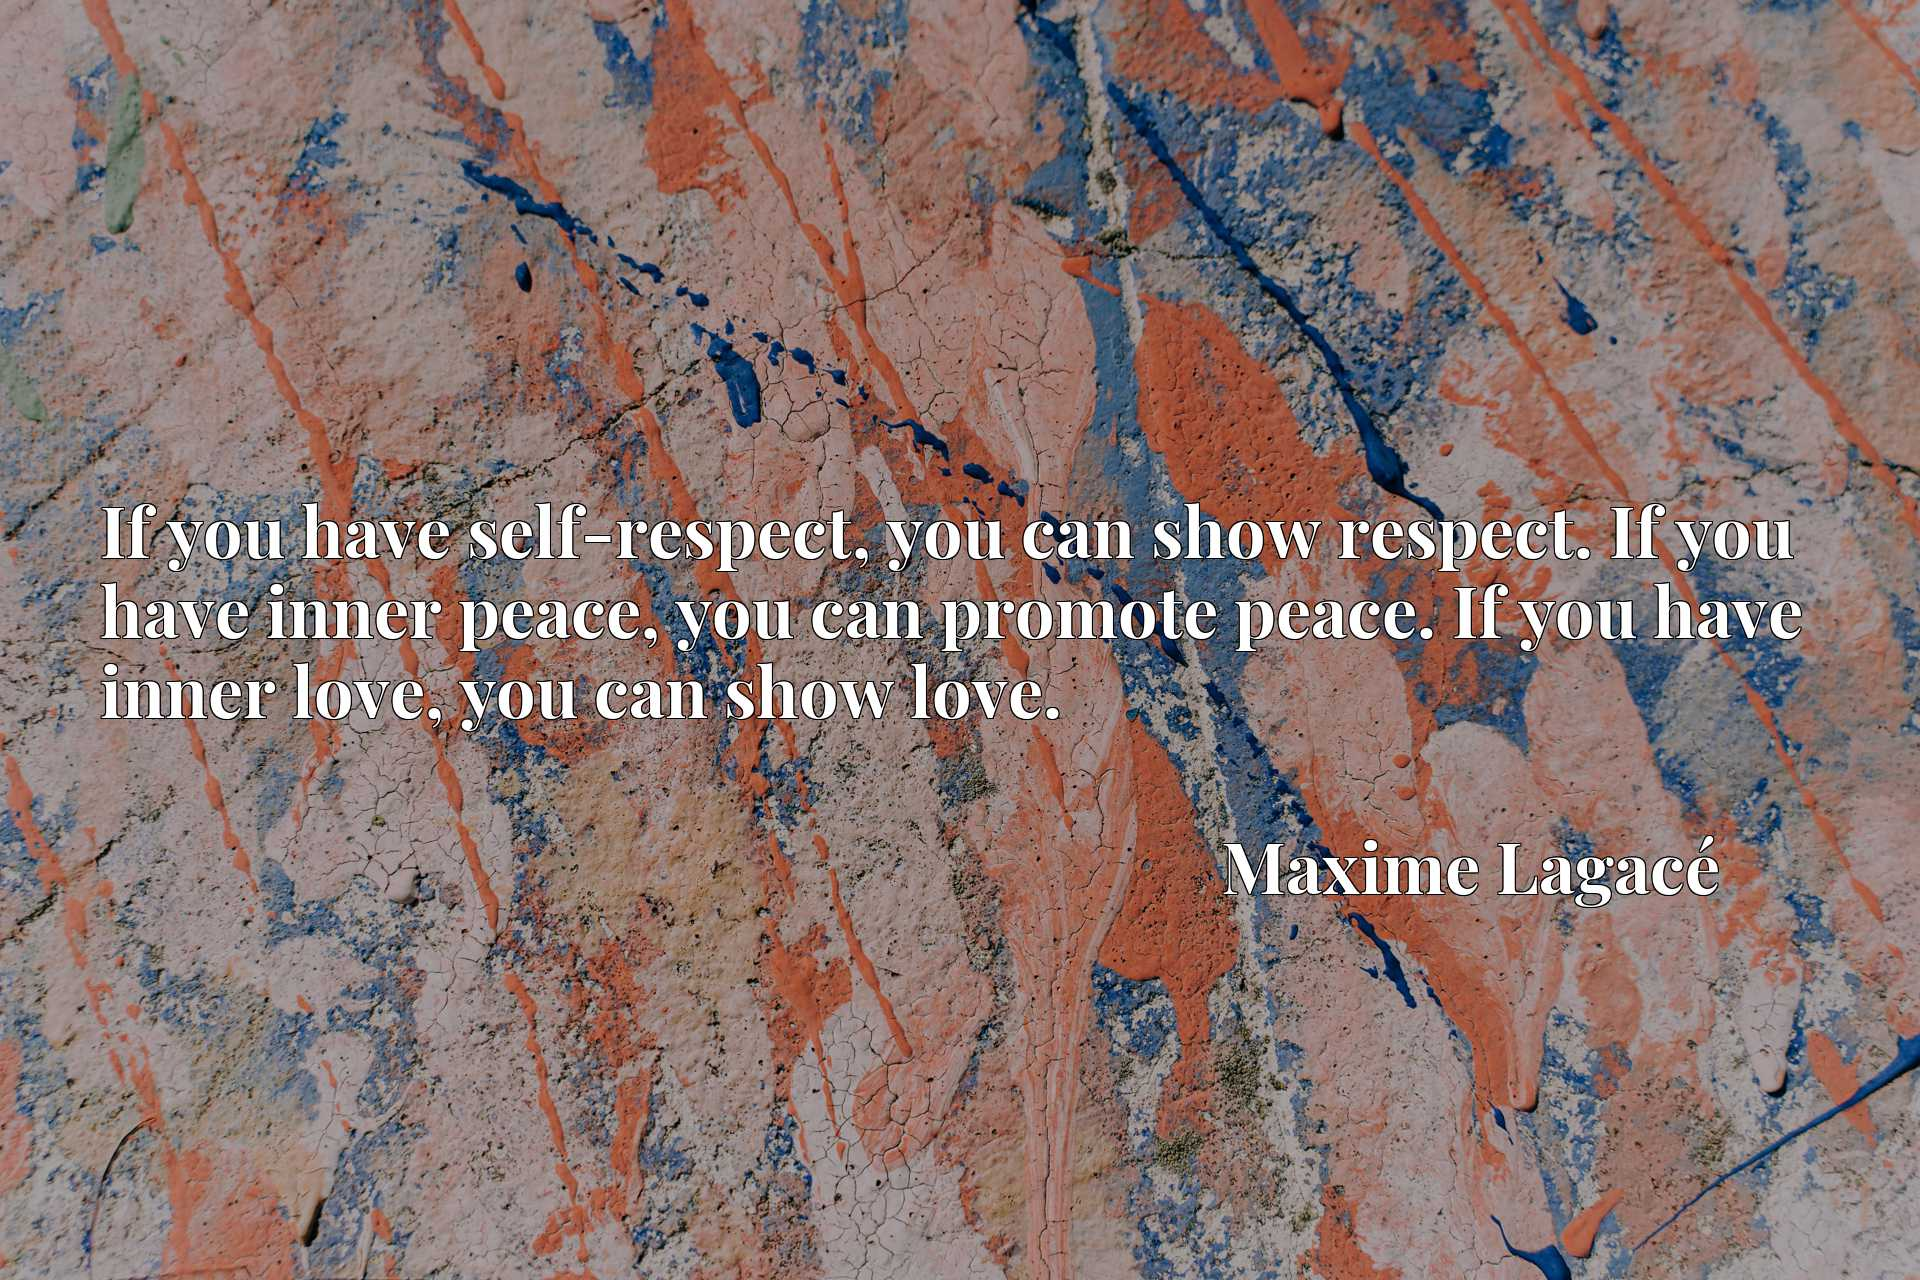 If you have self-respect, you can show respect. If you have inner peace, you can promote peace. If you have inner love, you can show love.